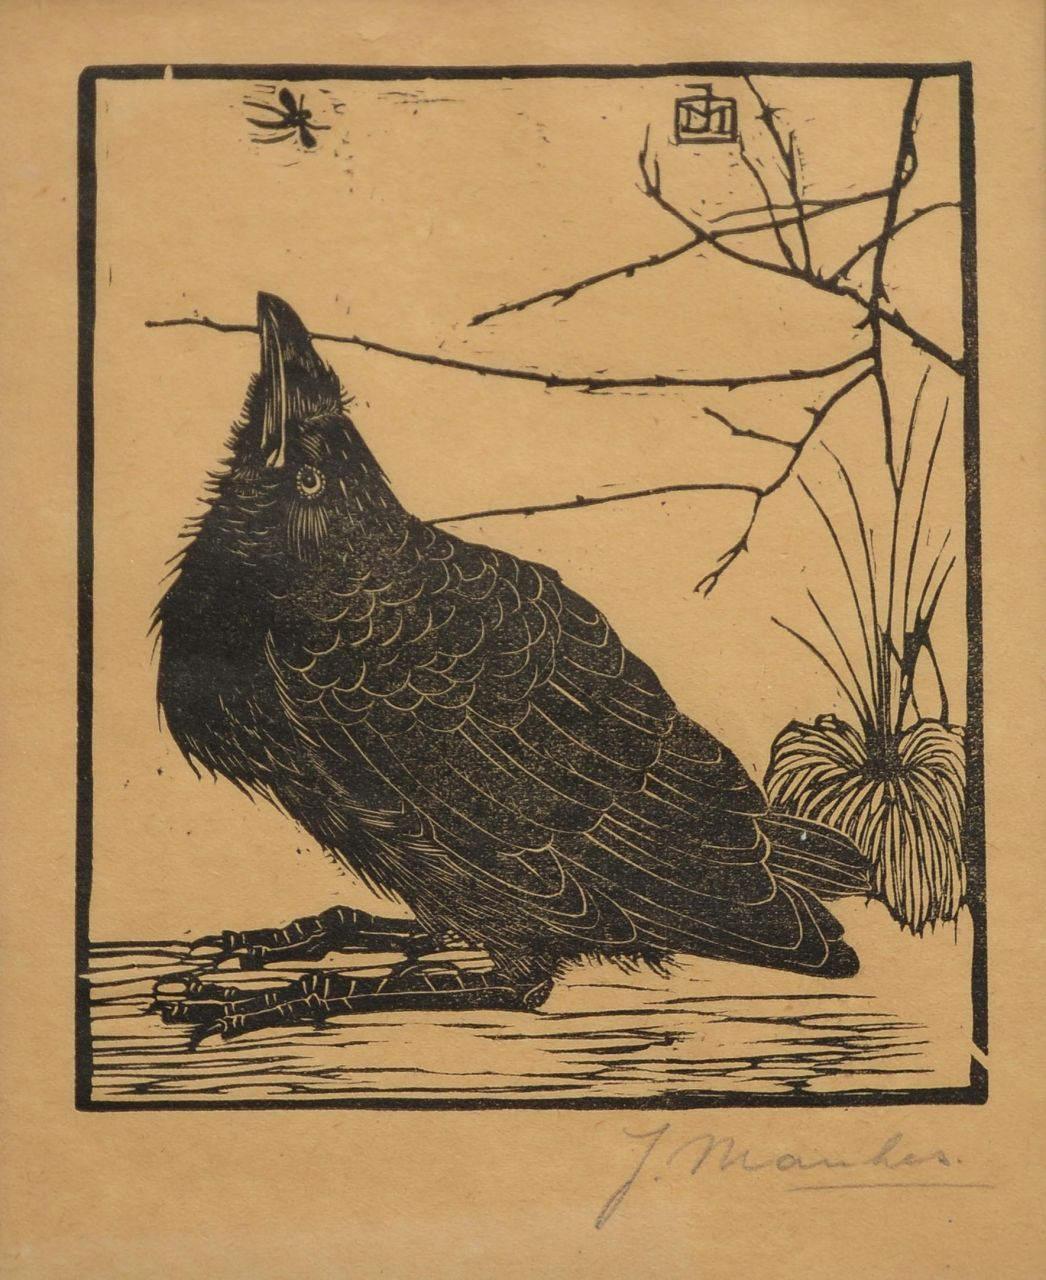 Mankes J.  | Jan Mankes, A crow, woodcut on coloured paper 11.8 x 10.2 cm, signed l.r. in full (in pencil) and with mon. in the bloc and executed in 1918